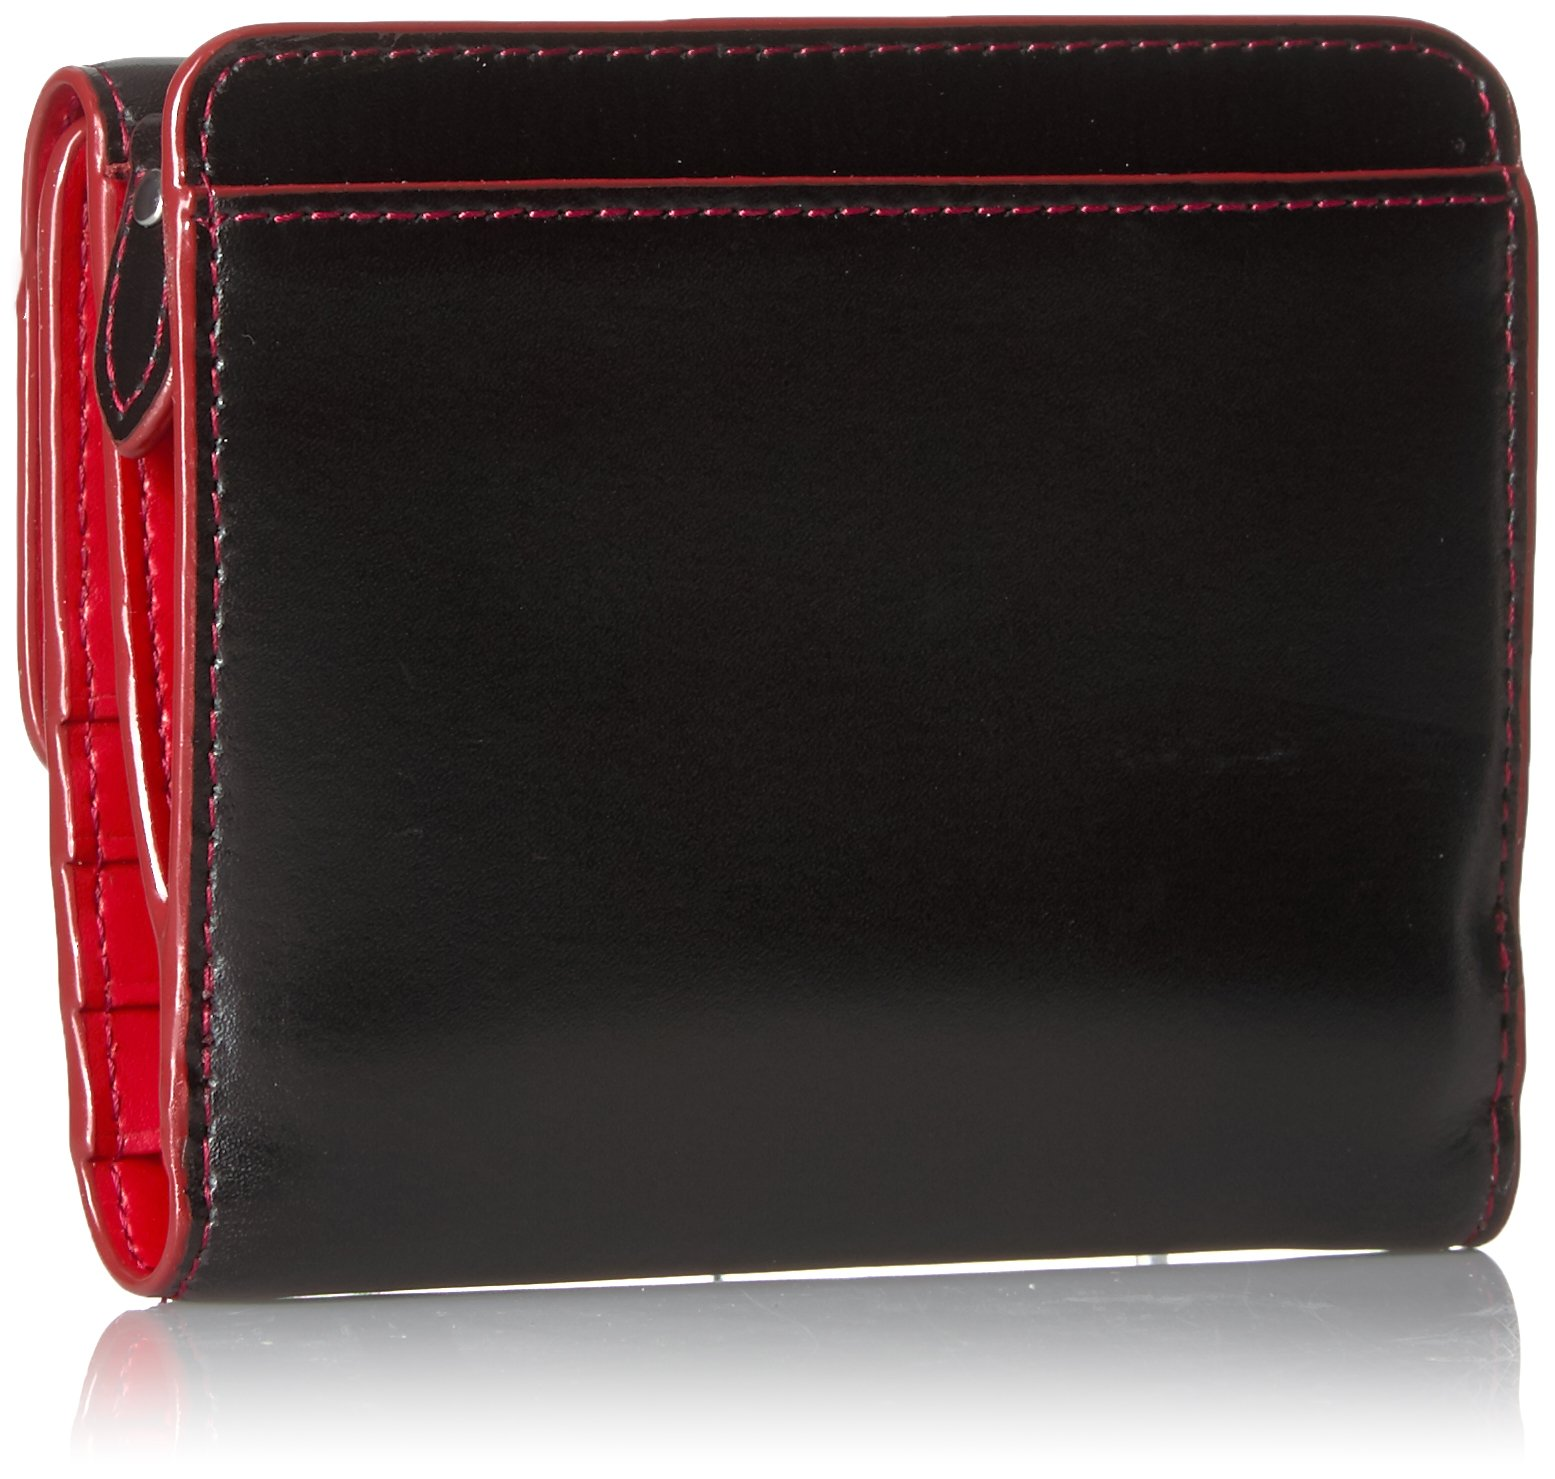 Lodis Audrey Rfid French Purse Wallet by Lodis (Image #2)